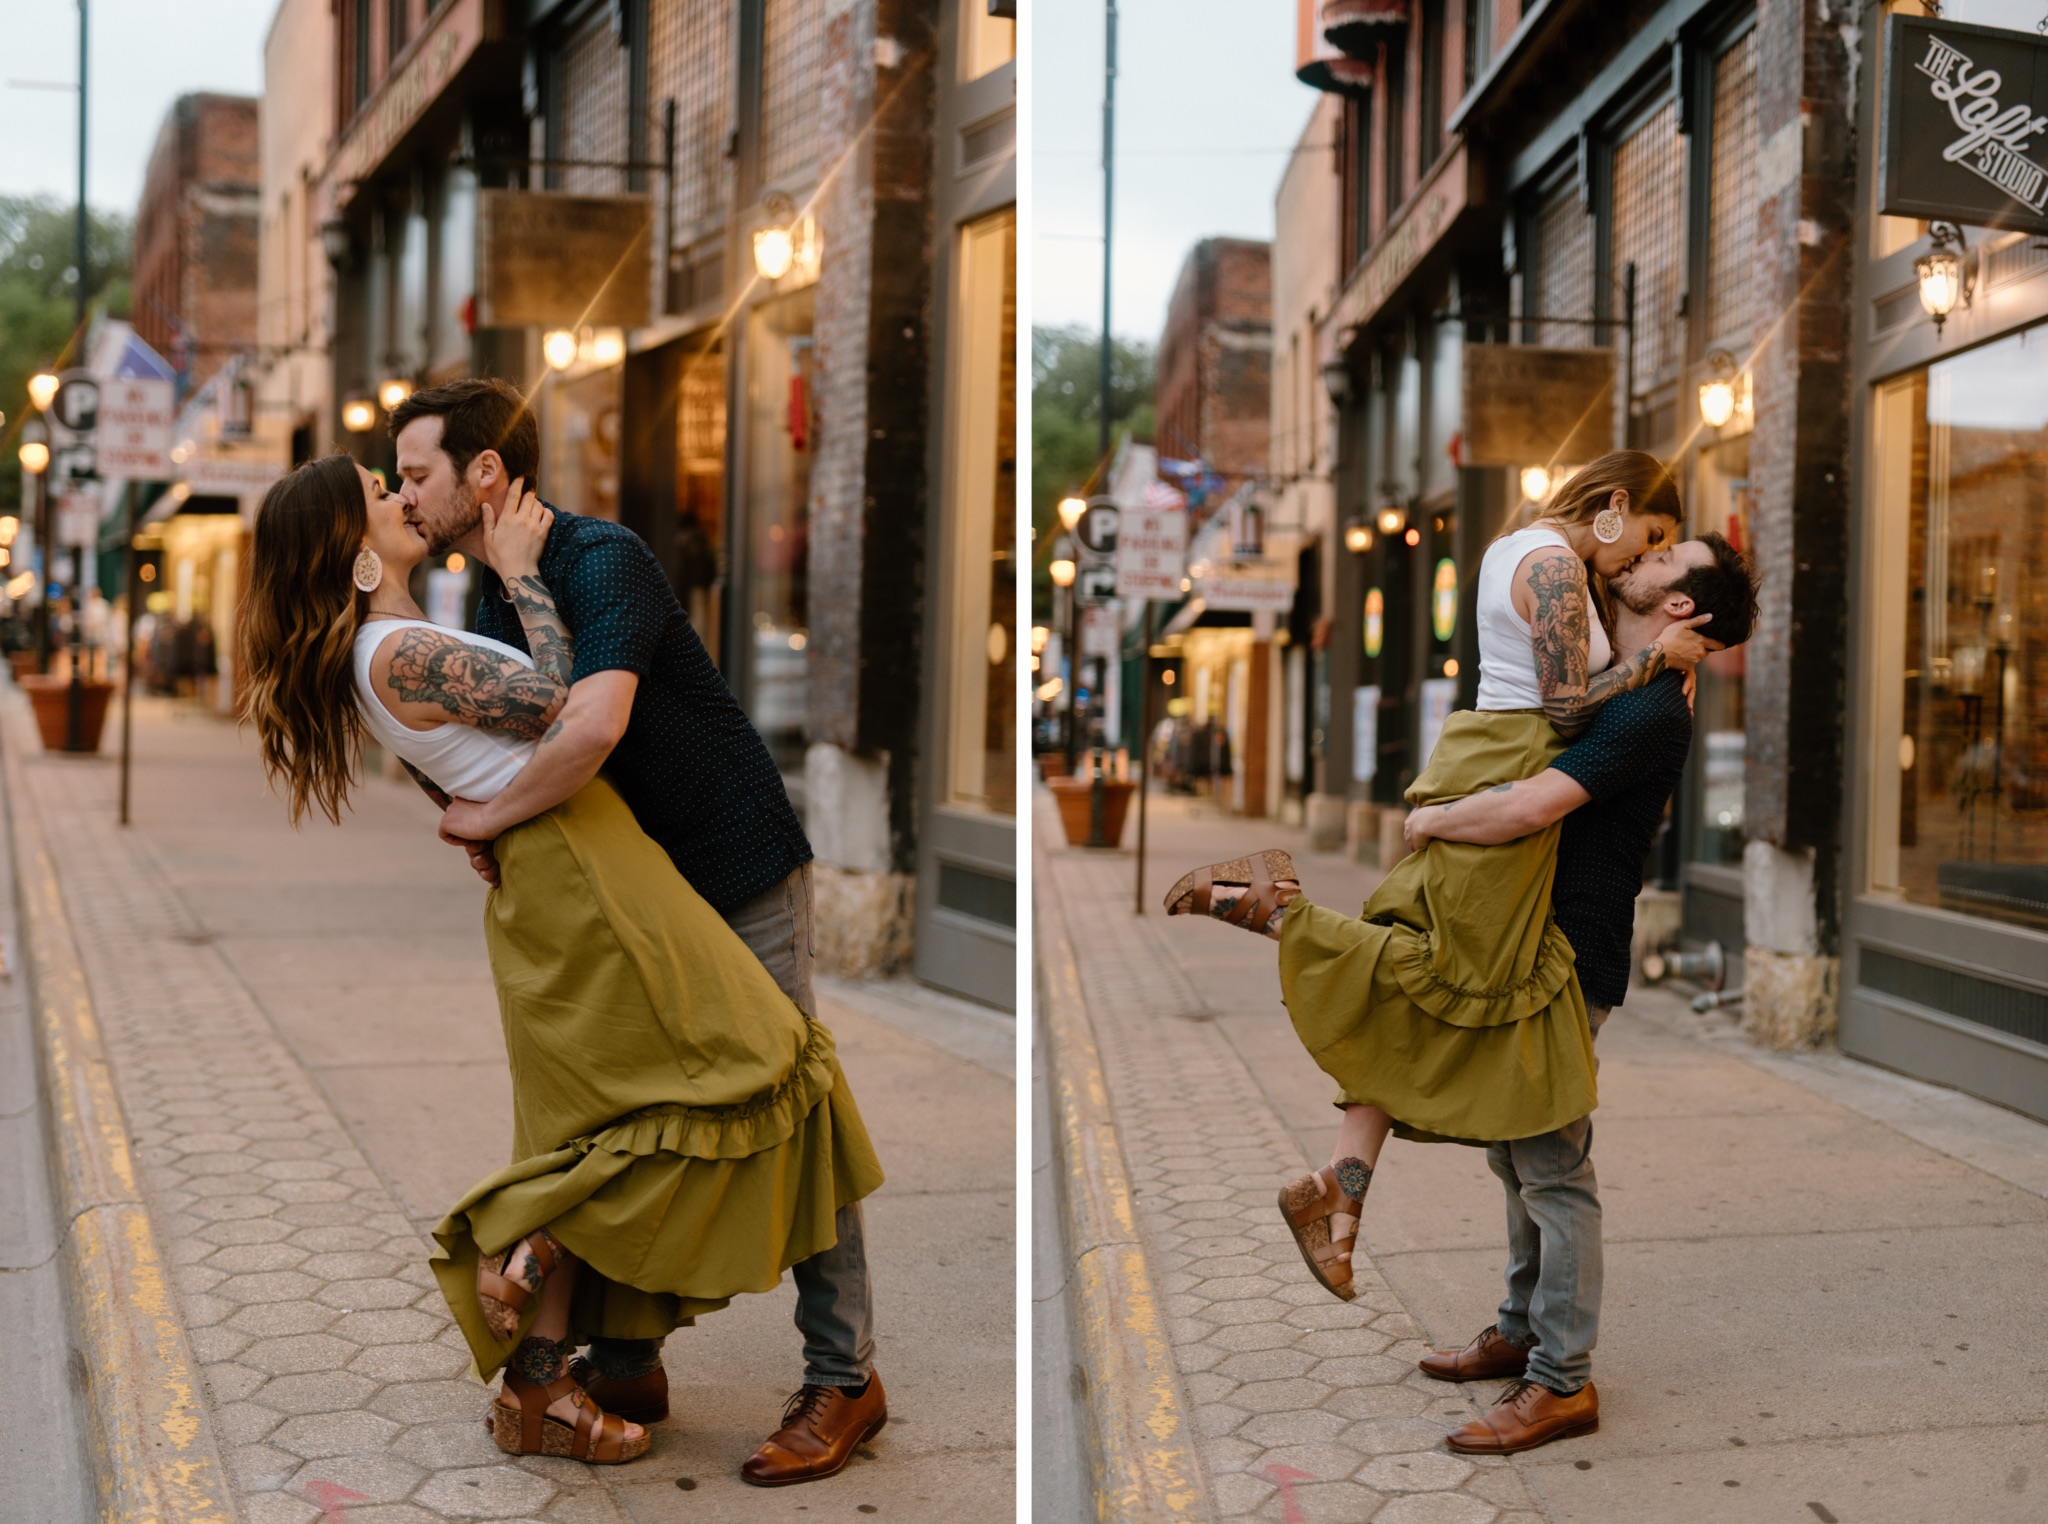 photo on left is man and woman embracing and kissing, photo on left is man lifting up woman and kissing